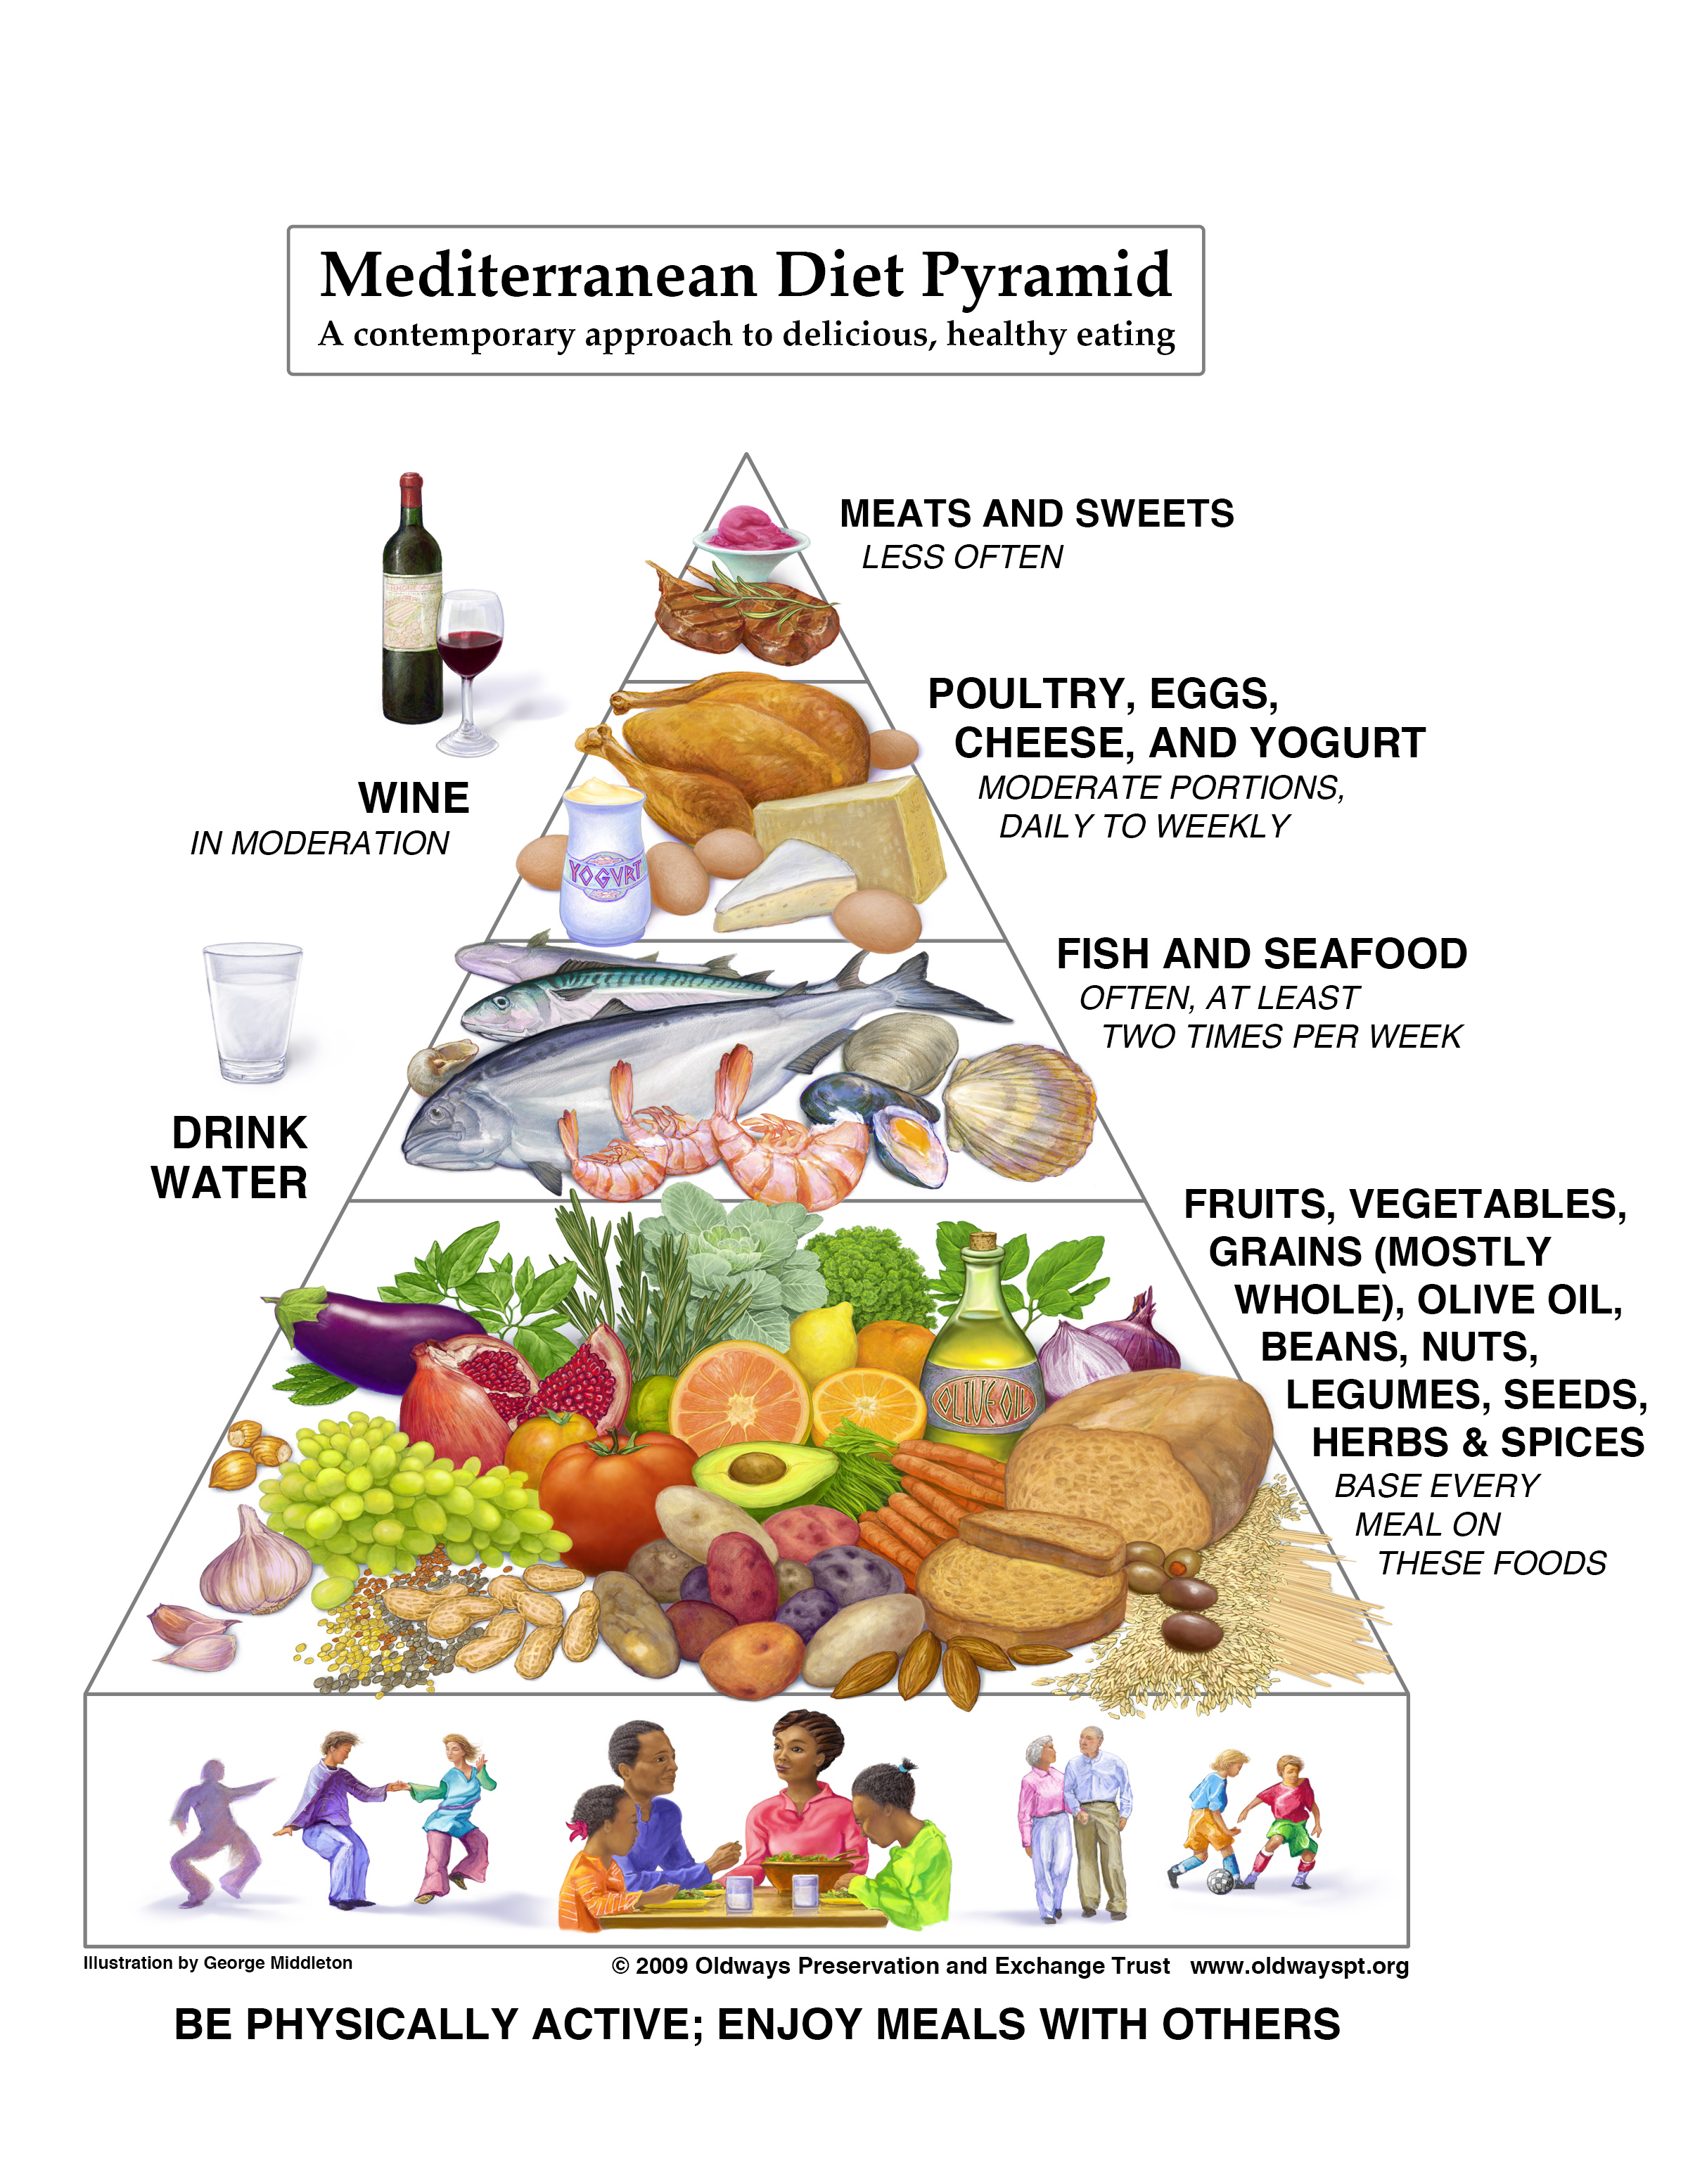 a picture of the Mediterranean Diet Pyramid